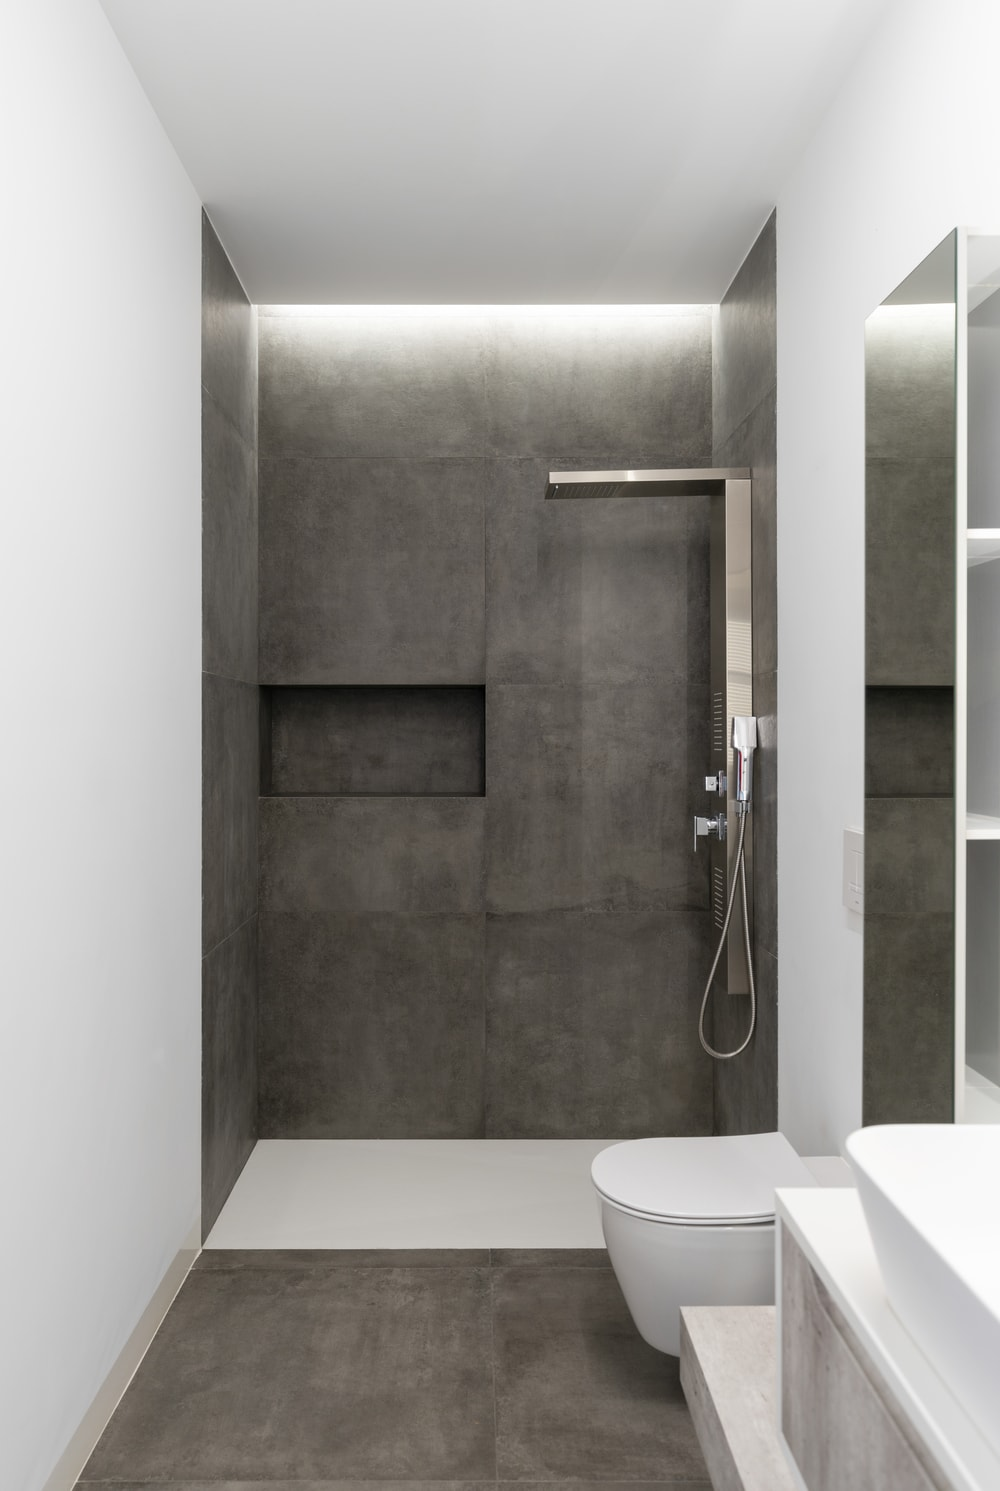 This is the walk-in shower area with modern fixtures and a dark gray wall on the far side.